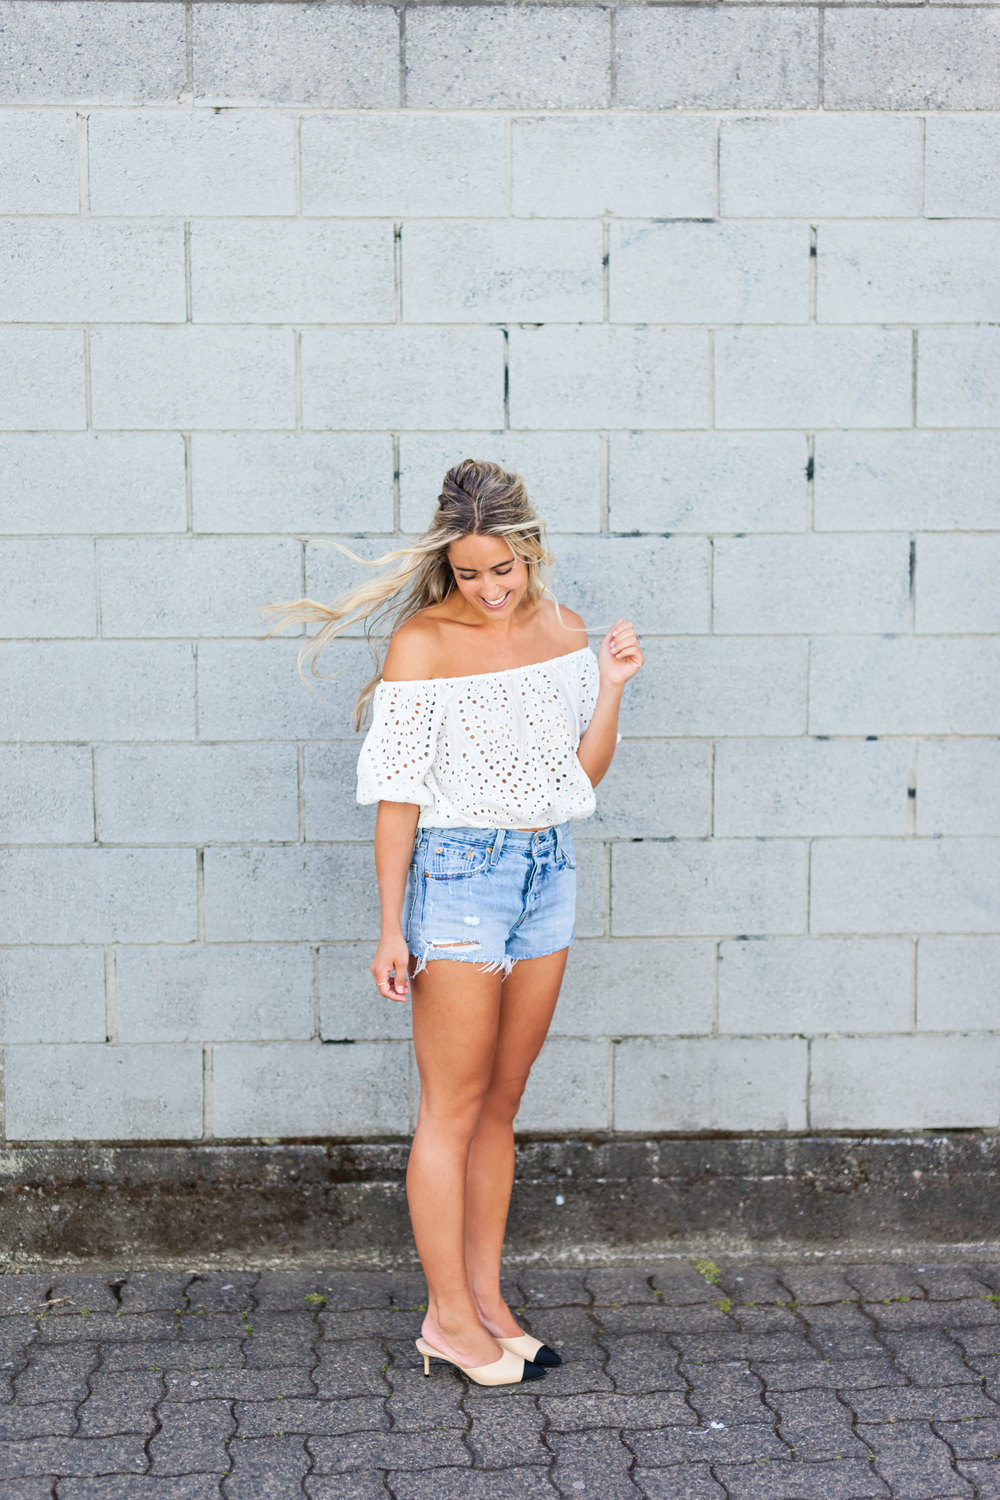 Photos Allison Kuhl Zara Top, Levi's Shorts, Chanel Shoes